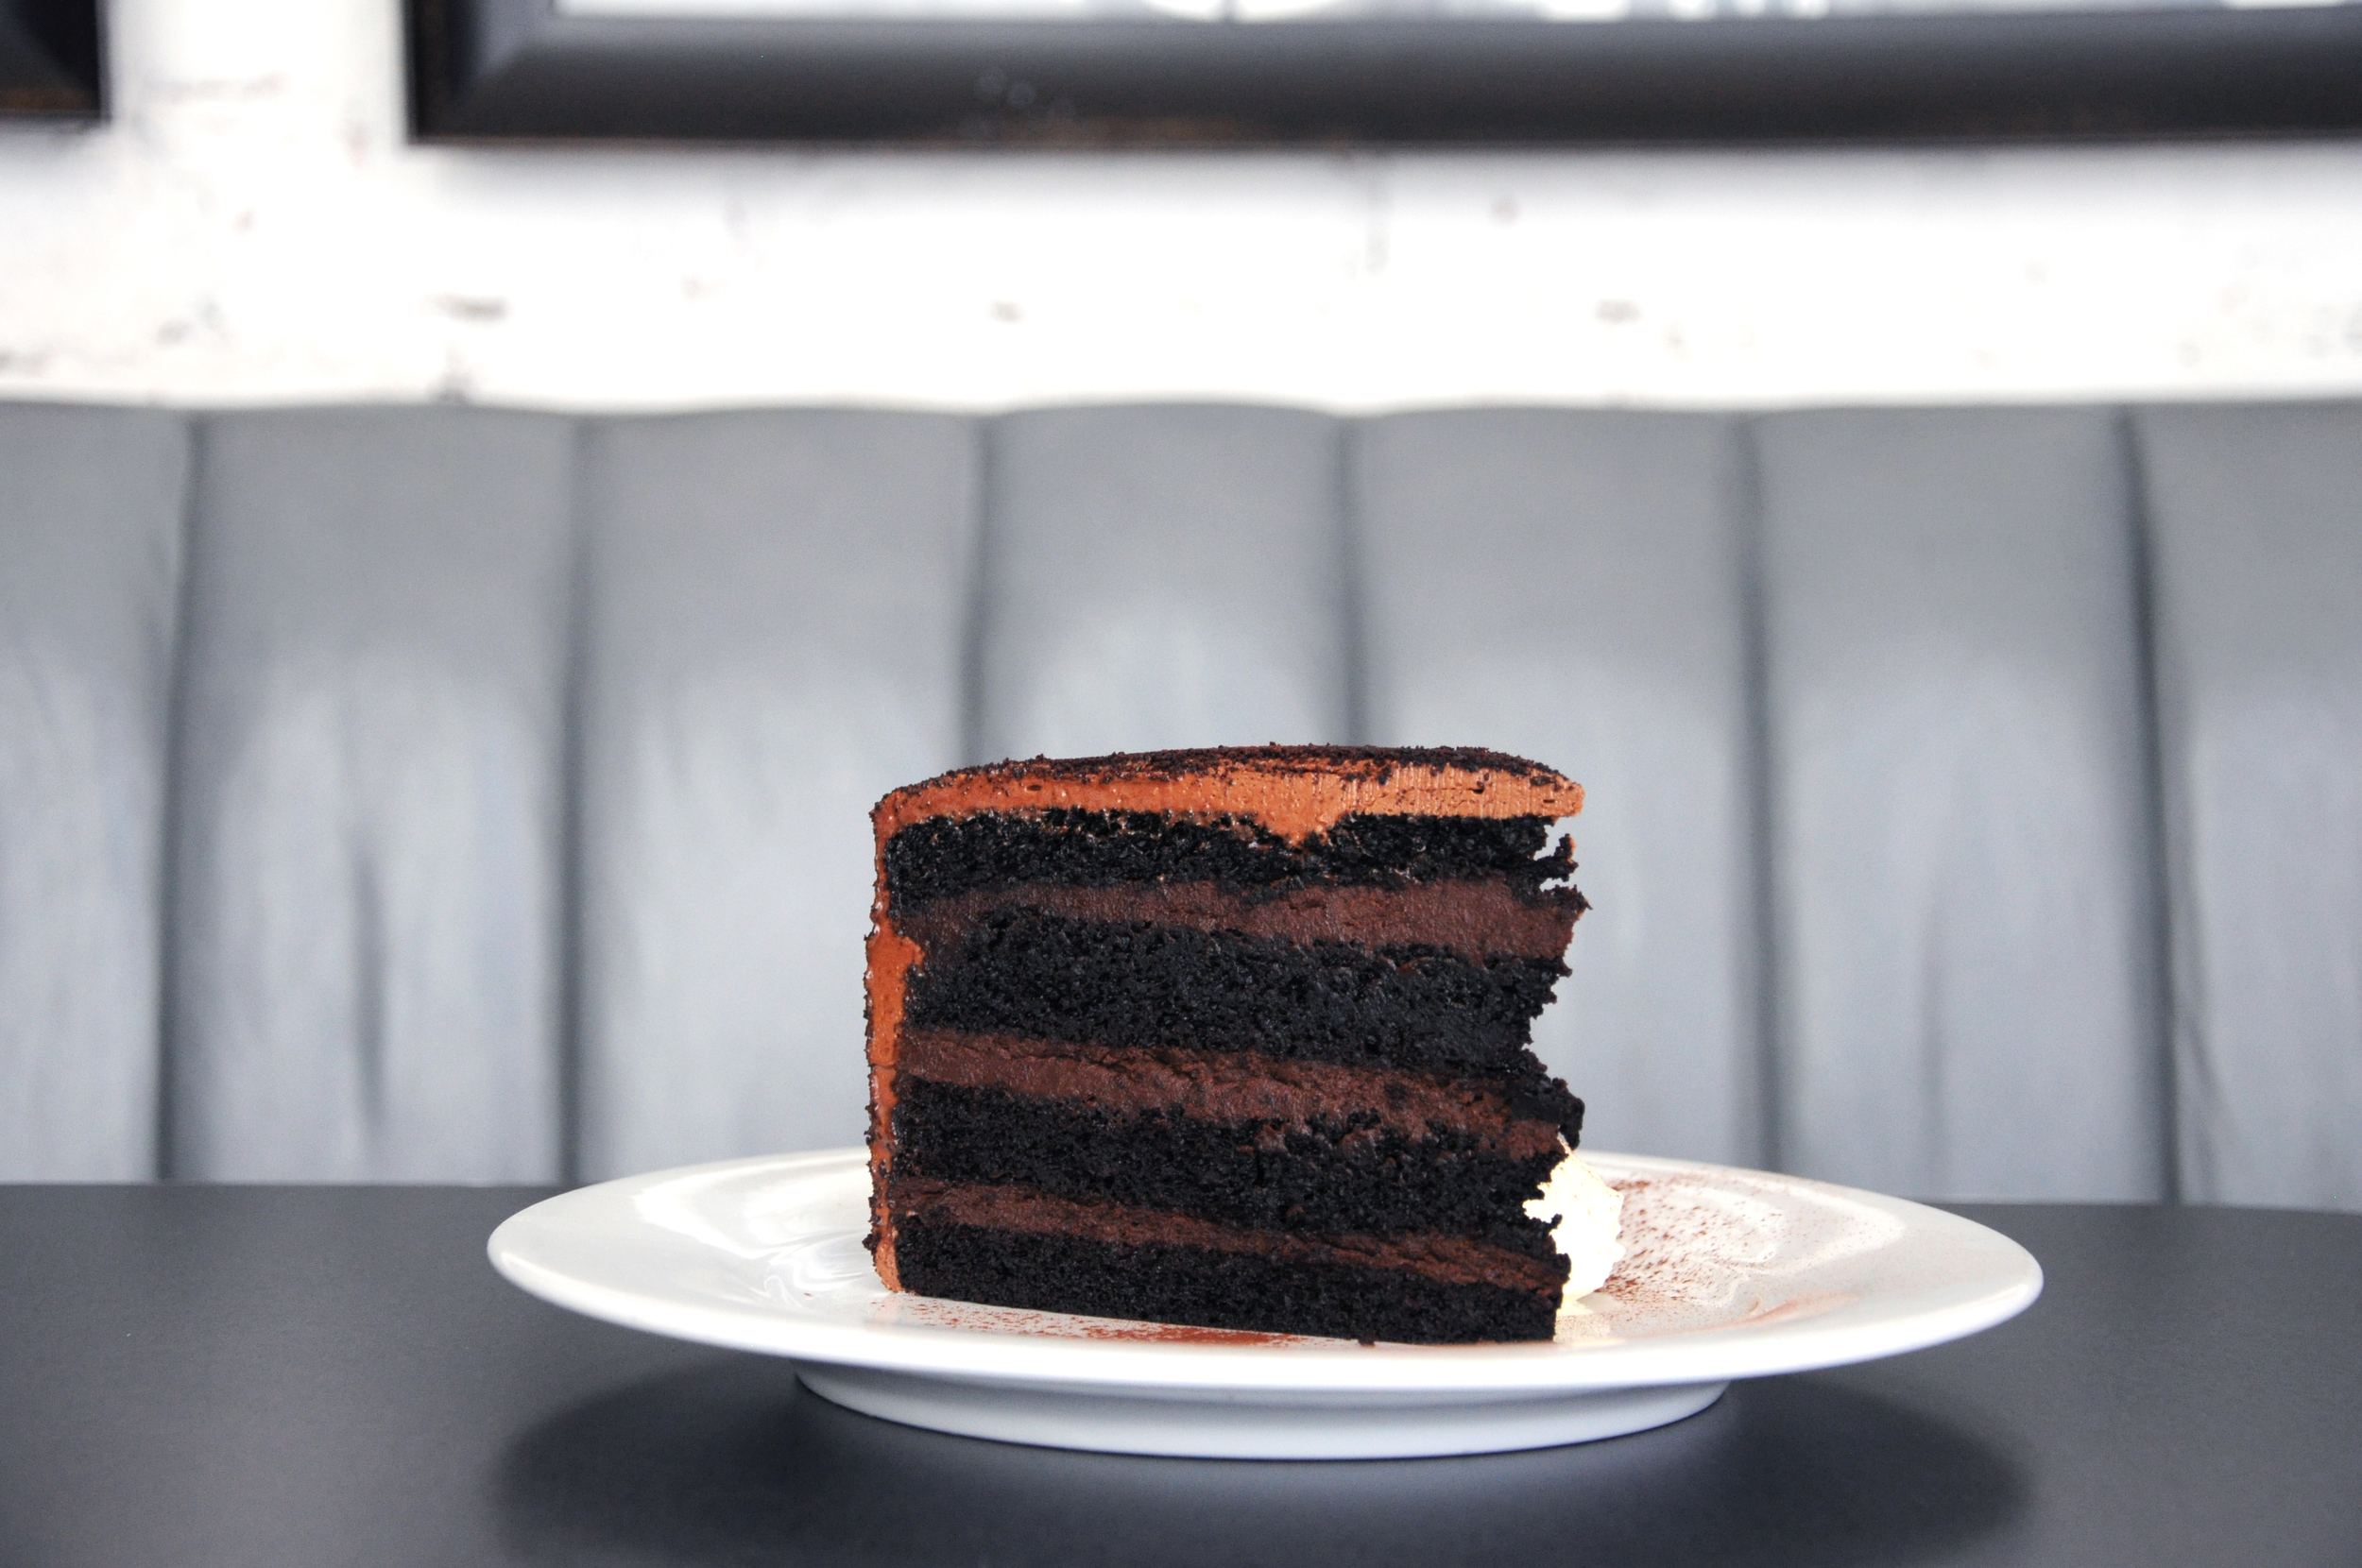 Brooklyn blackout cake at Empire Diner